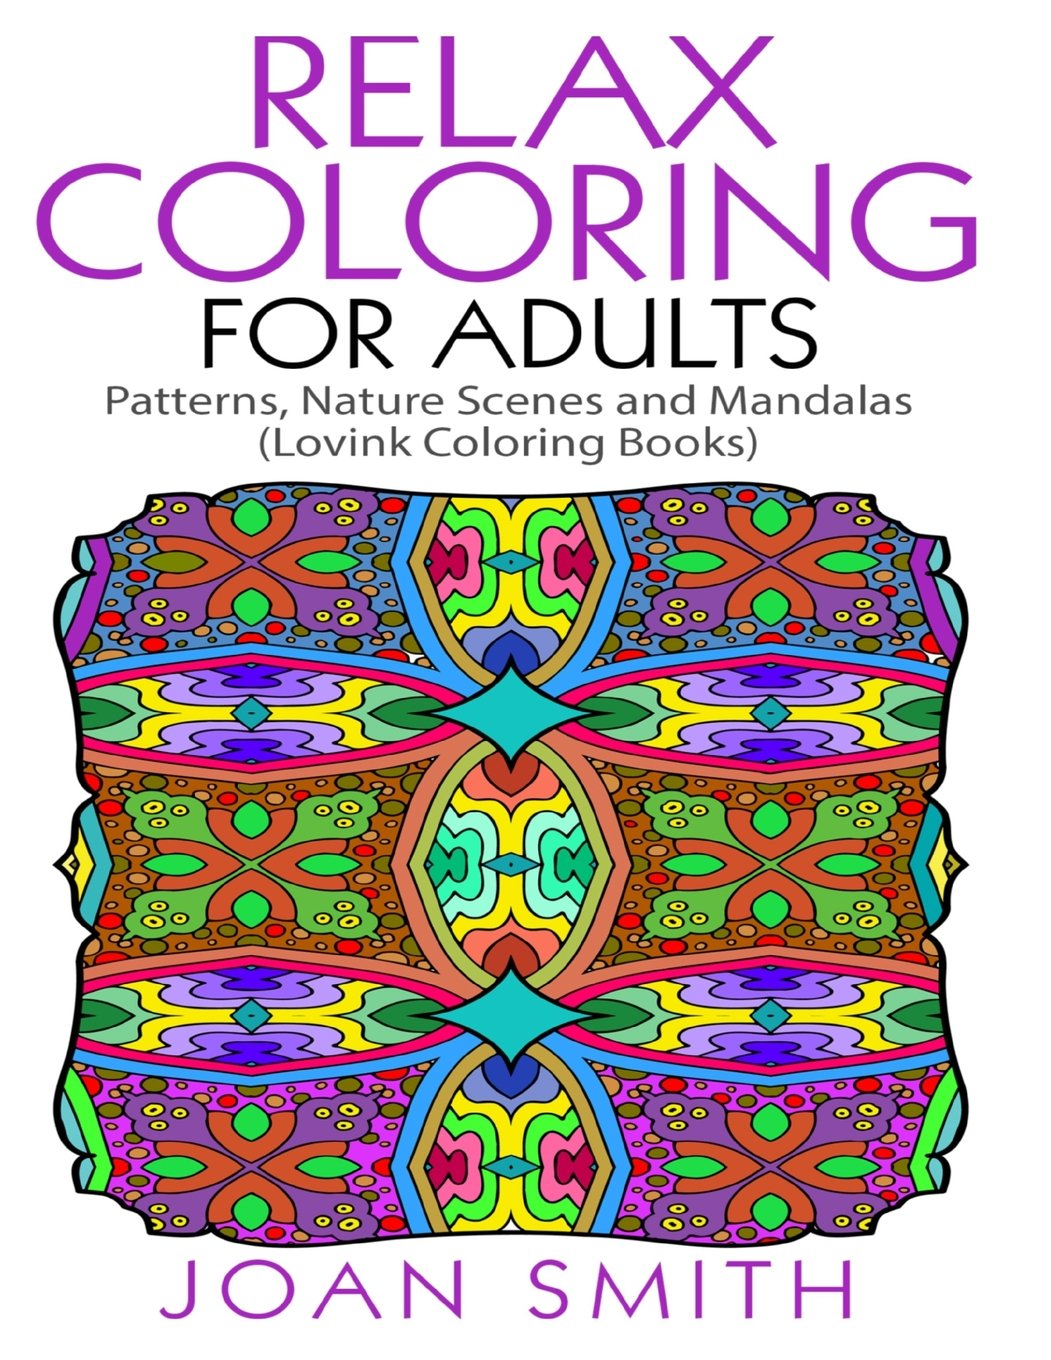 Download Relax Coloring For Adults: Patterns, Nature Scenes and Mandalas Lovink Coloring Books ebook